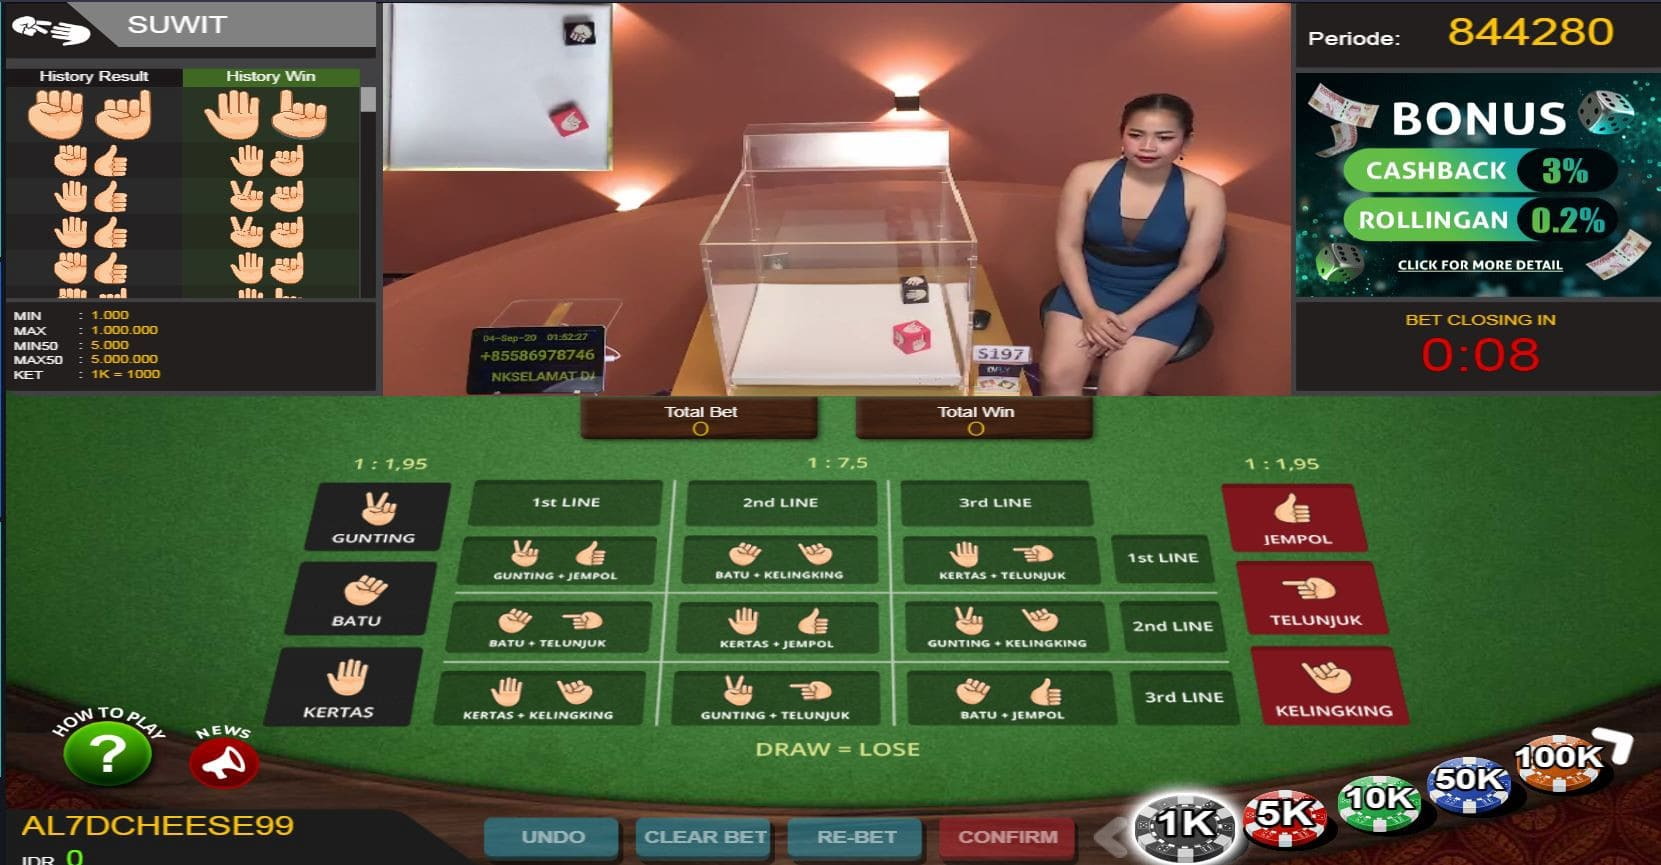 Information About Receiving Bonuses In Online Betting